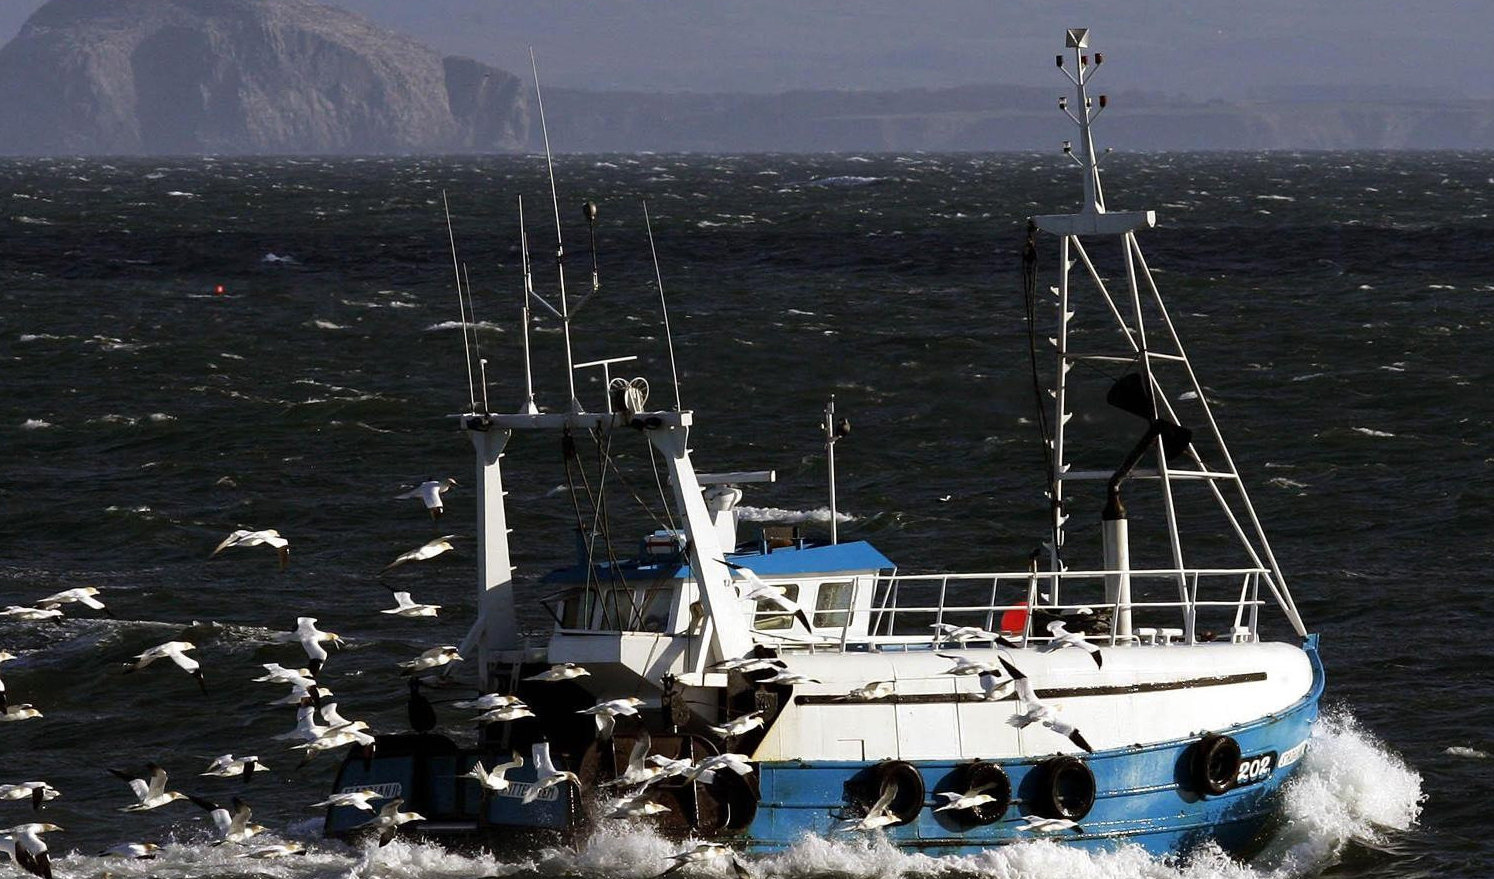 The European Union is to refuse to negotiate on fishing quotas